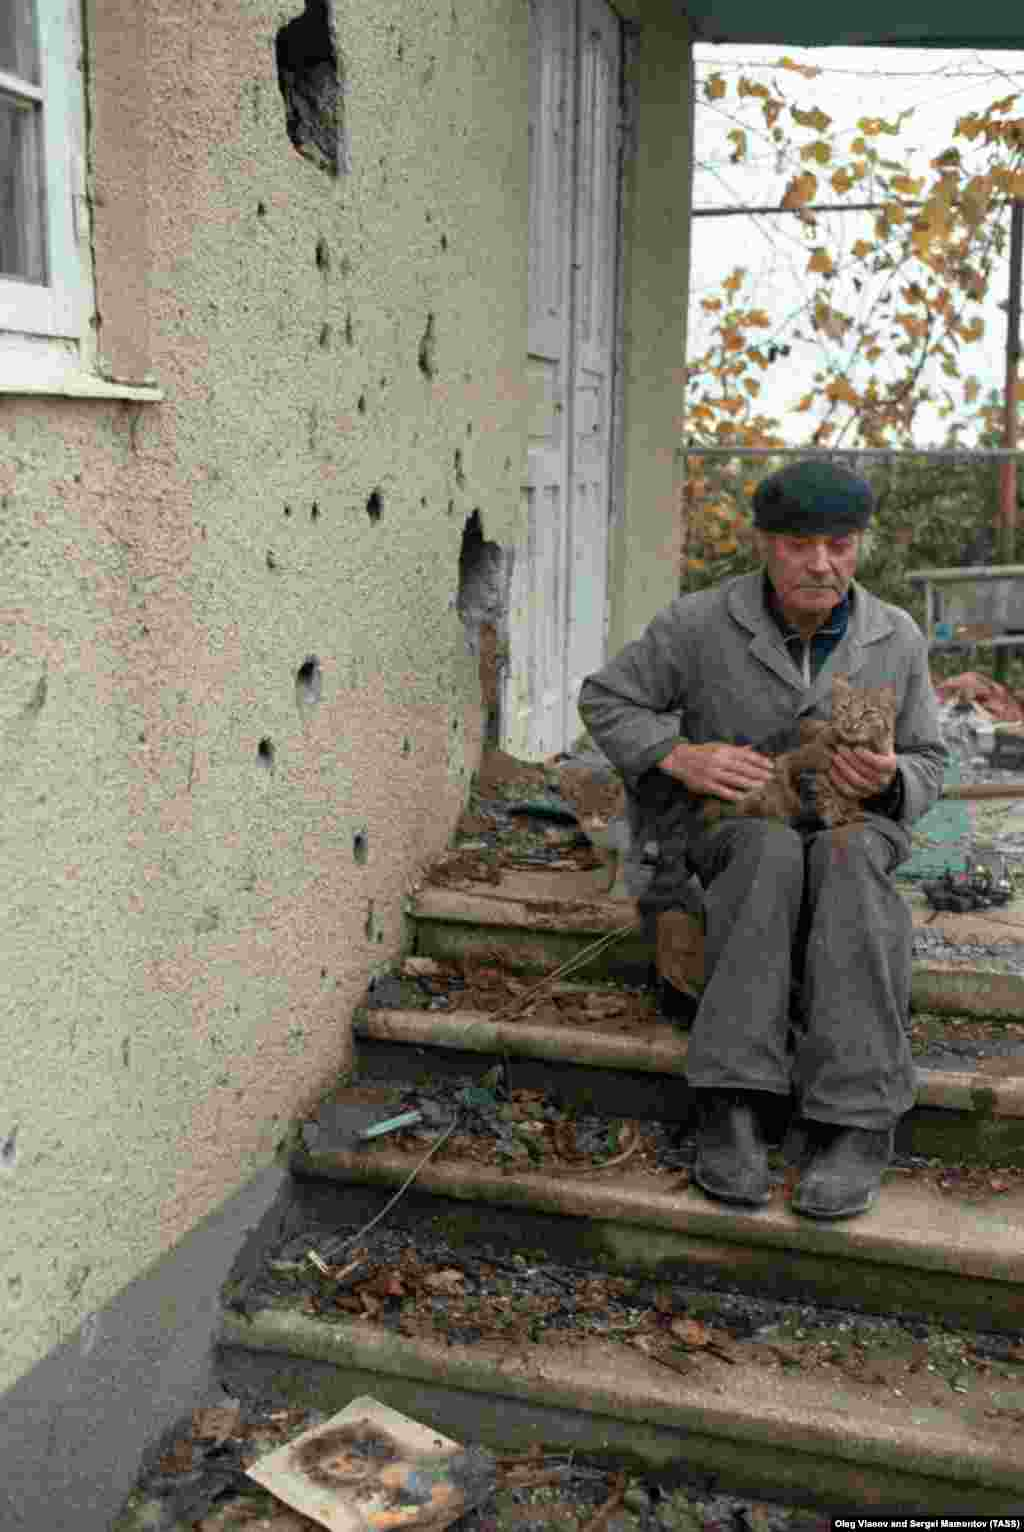 A civilian outside his bullet-pocked home. As the fighting dragged into winter, bands of gunmen prowled rural Abkhazia, terrorizing villages in the now lawless region.